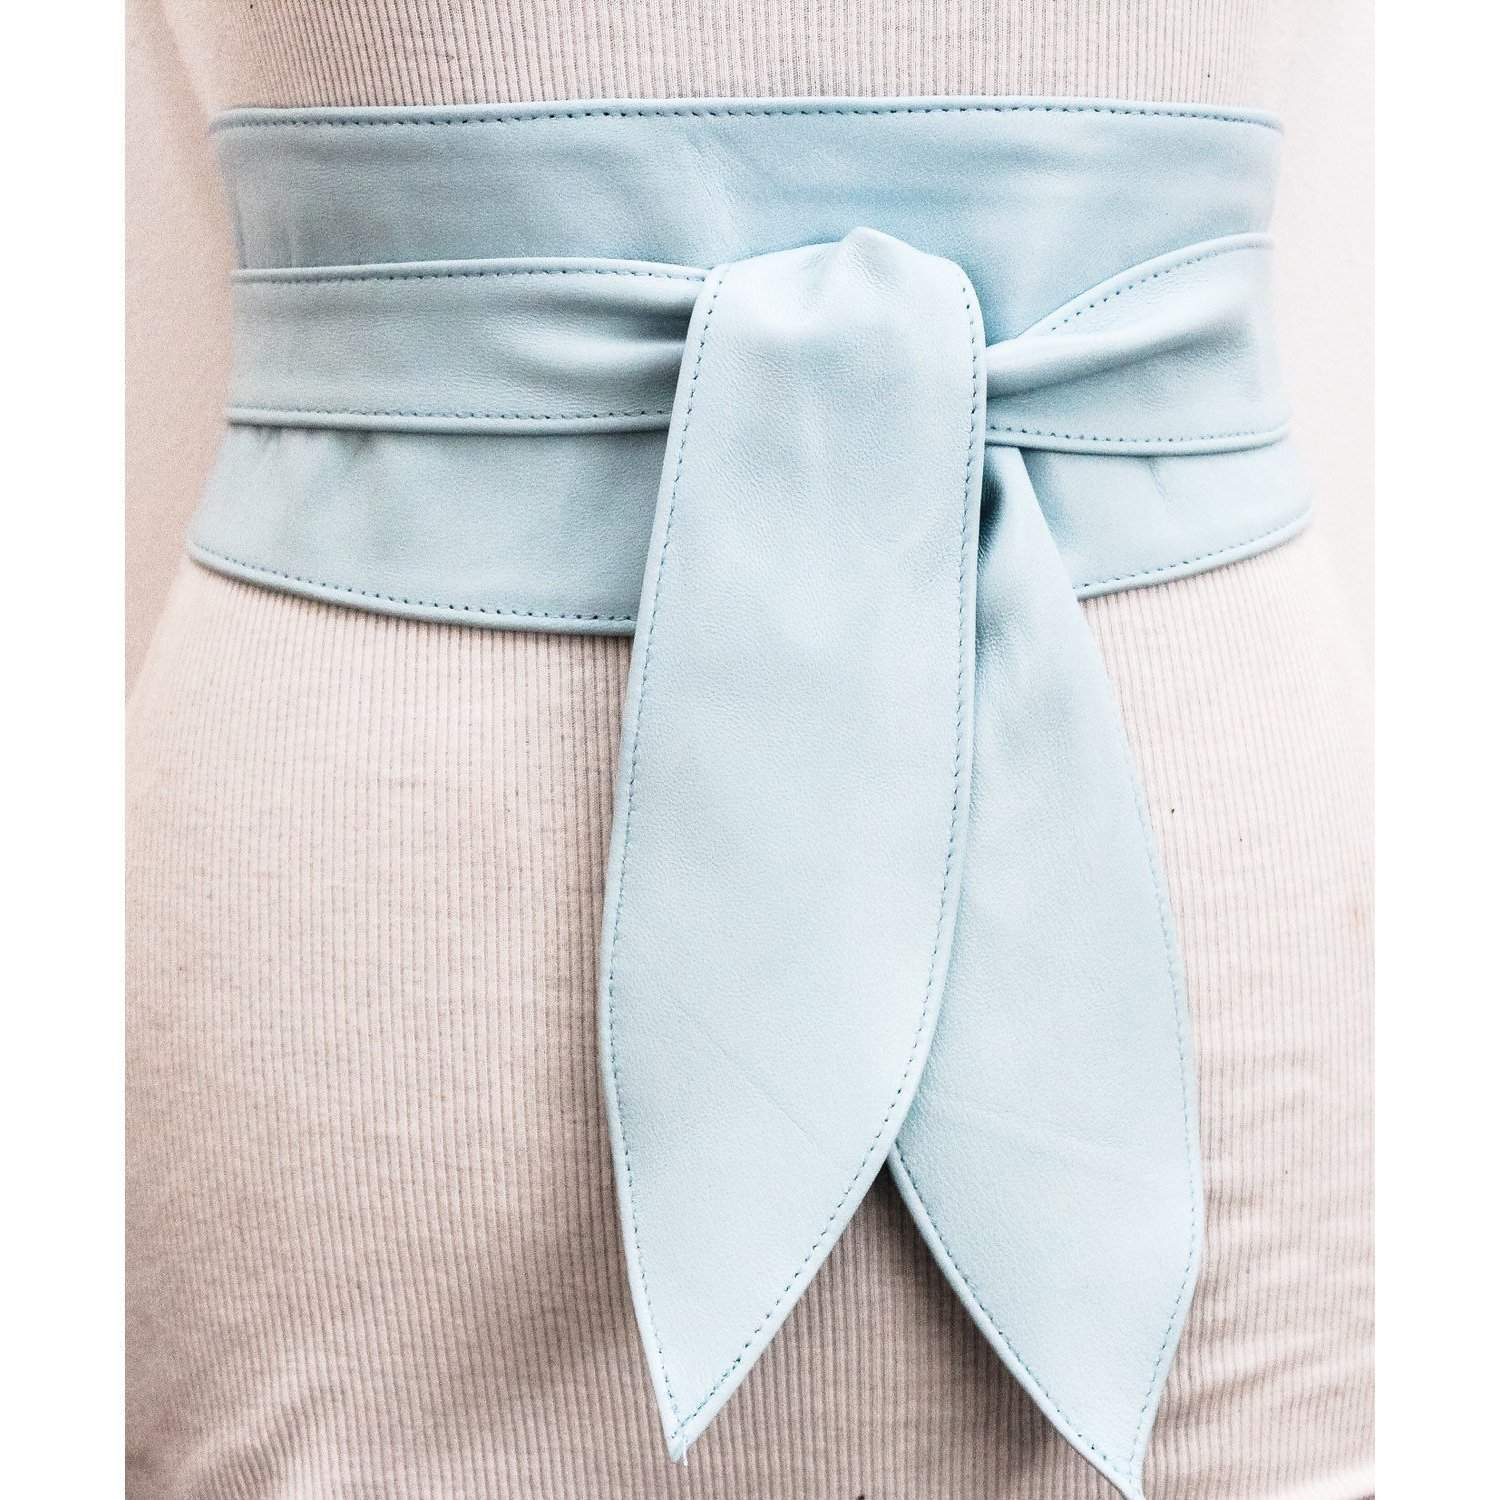 Baby Blue soft Leather Tulip Tie Obi Belt - loveyaayaa